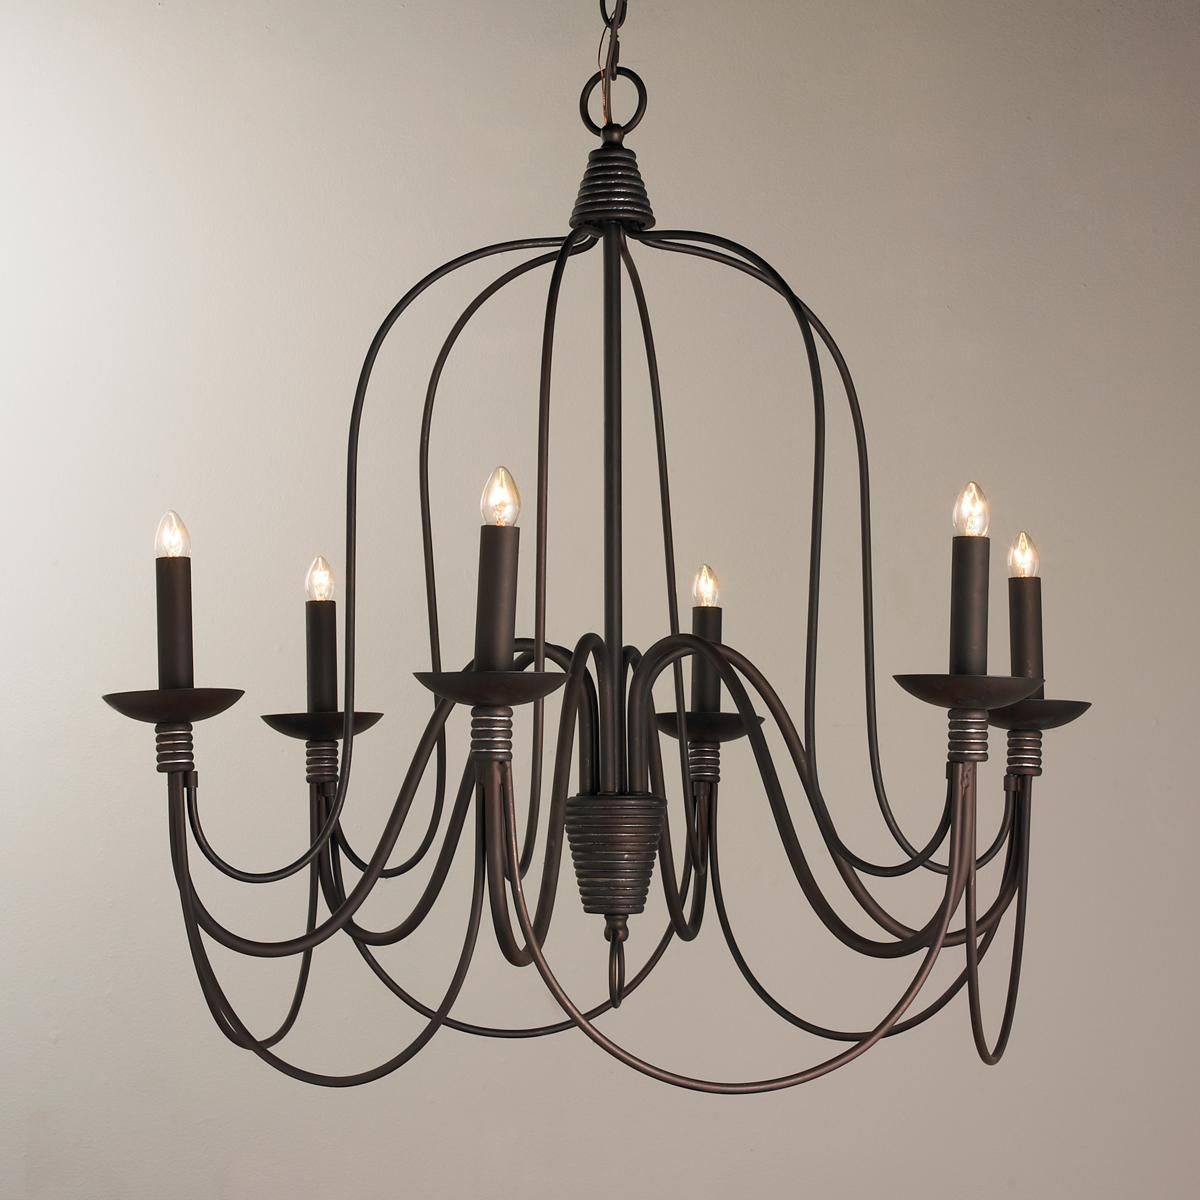 Large Bronze Swag Chandelier With The Allure Of French Countryside This Oil Rubbed Simple Sweeping Lines Has An Open Modern